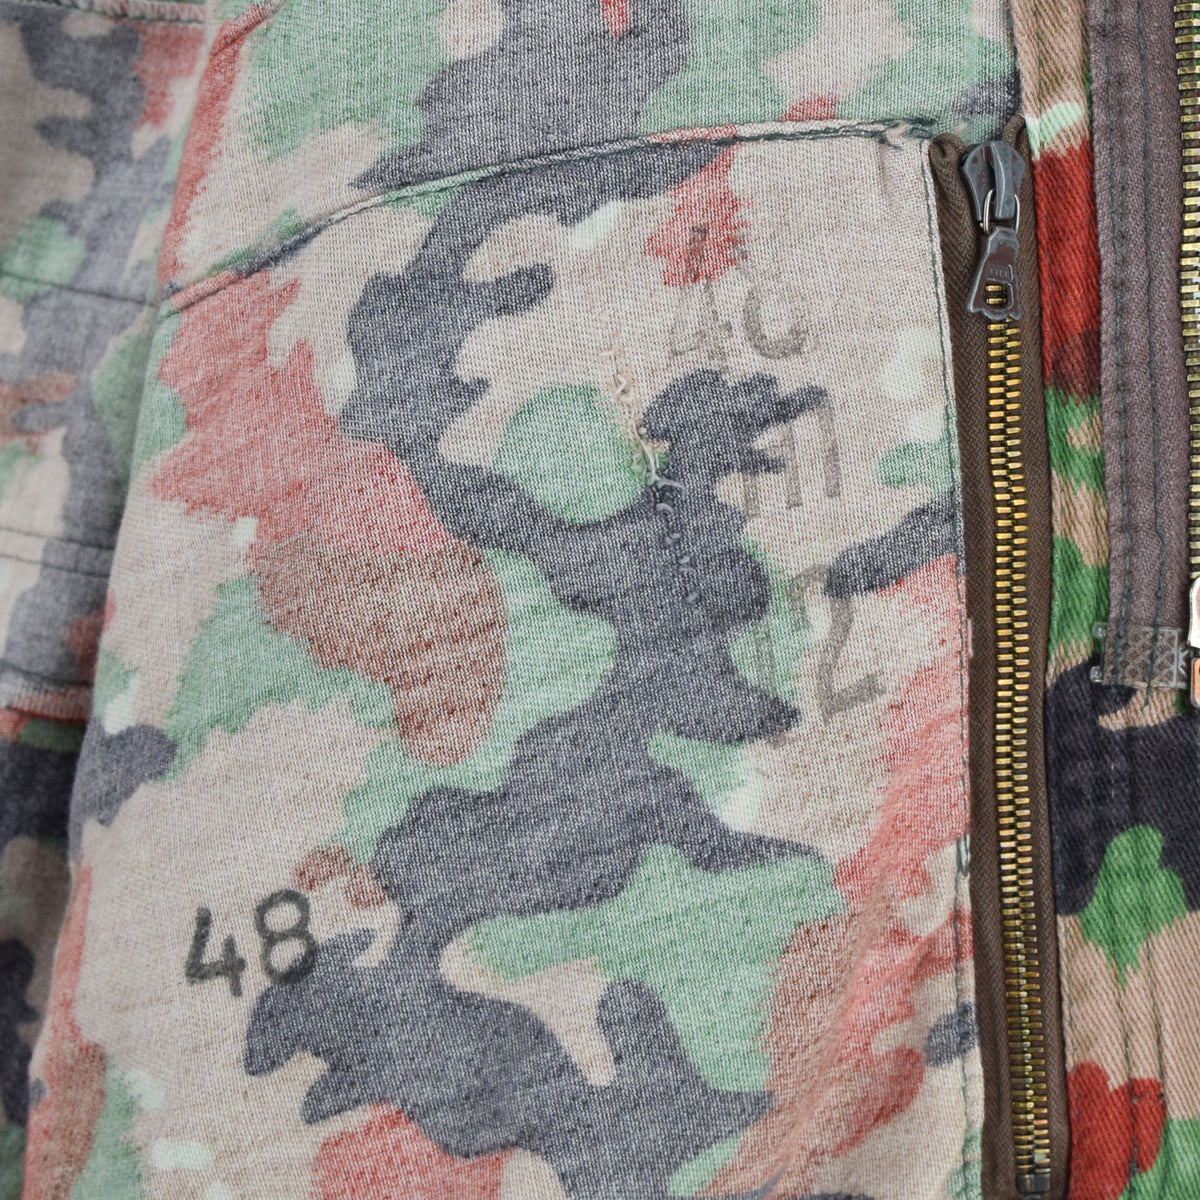 Vintage 70s Swiss Army Alpenflage Camo Swedish Sniper Combat Field Jacket S / M internal print